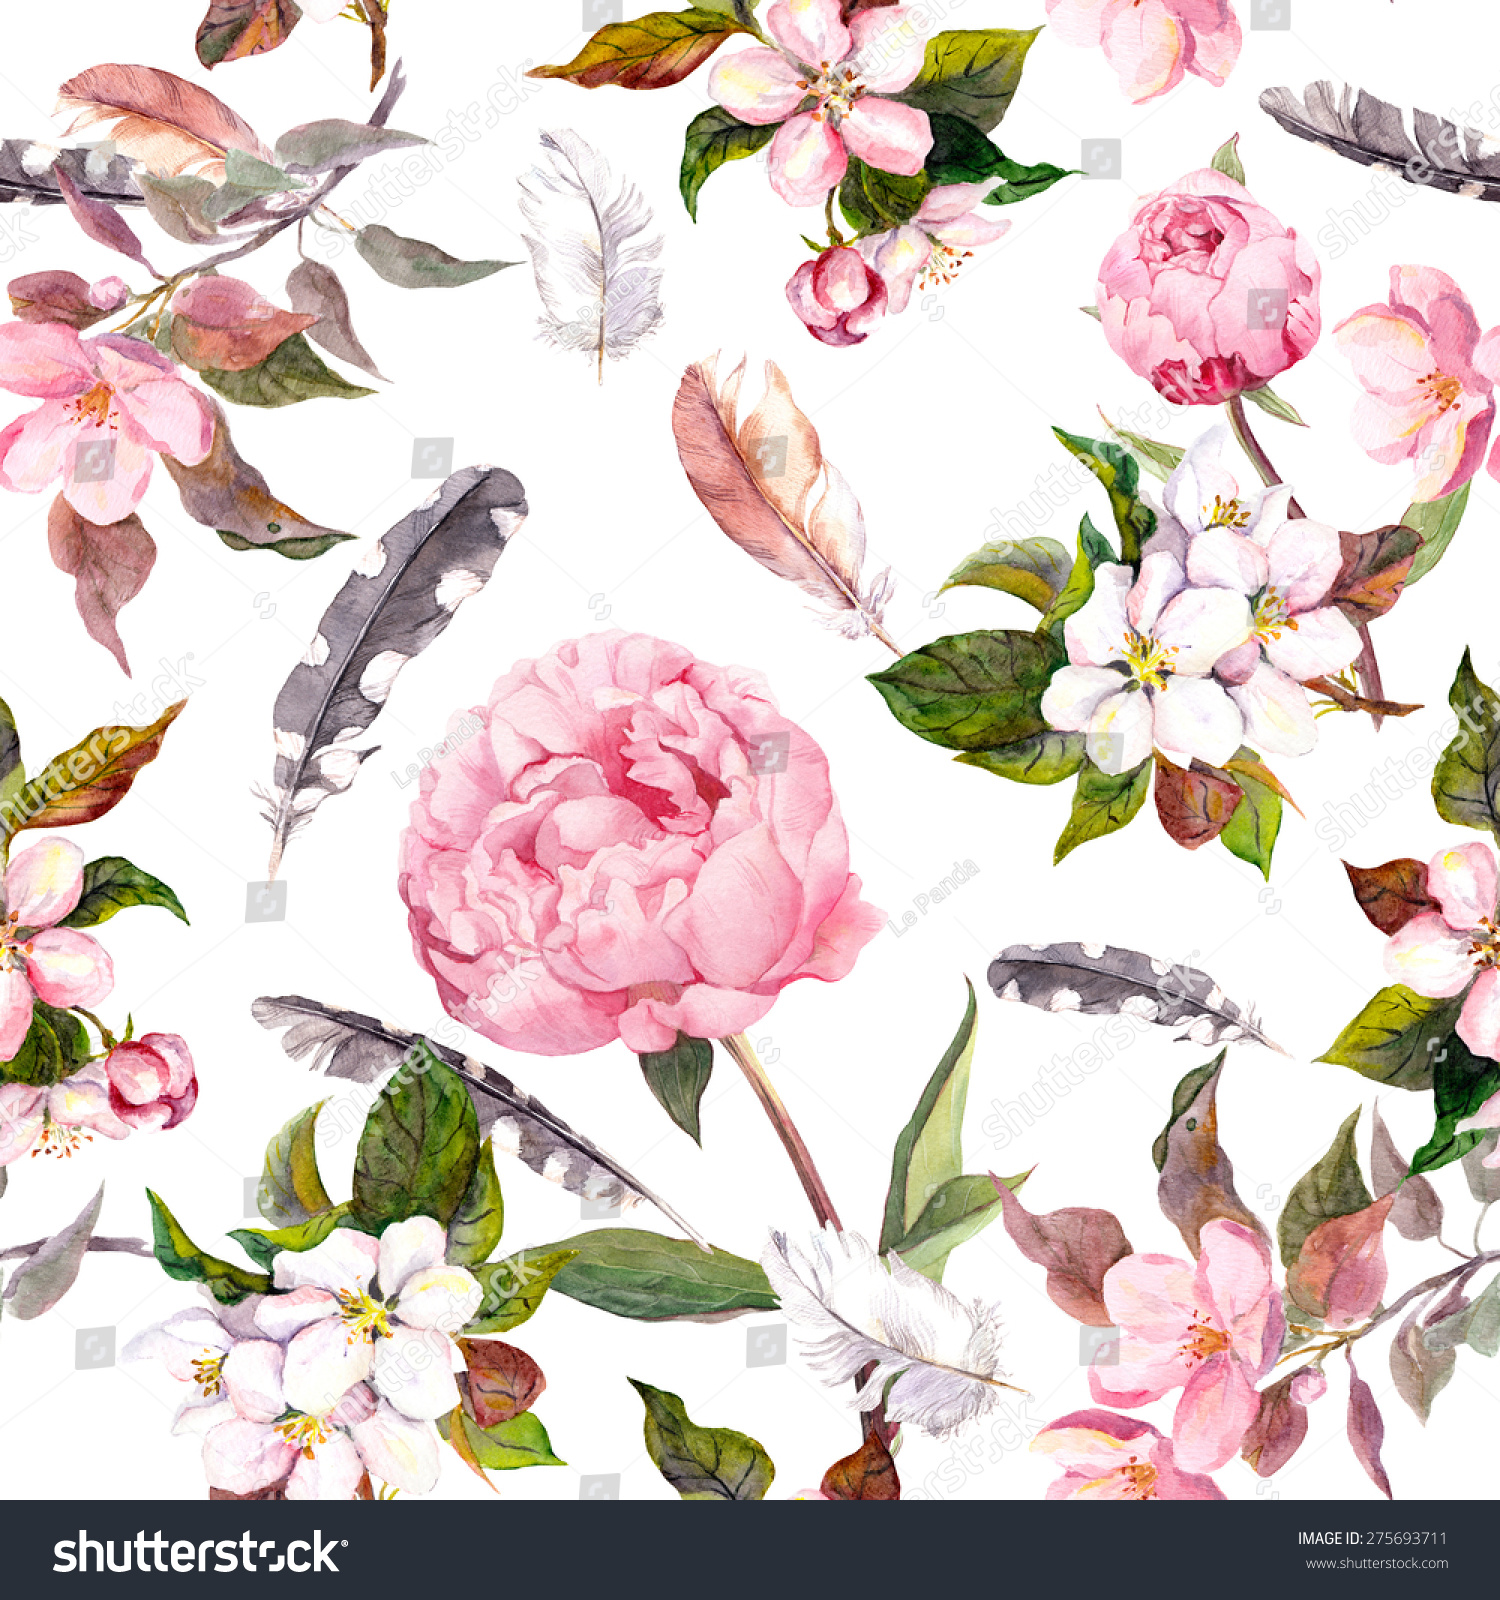 Peony flowers sakura feathers Vintage seamless floral pattern Watercolor